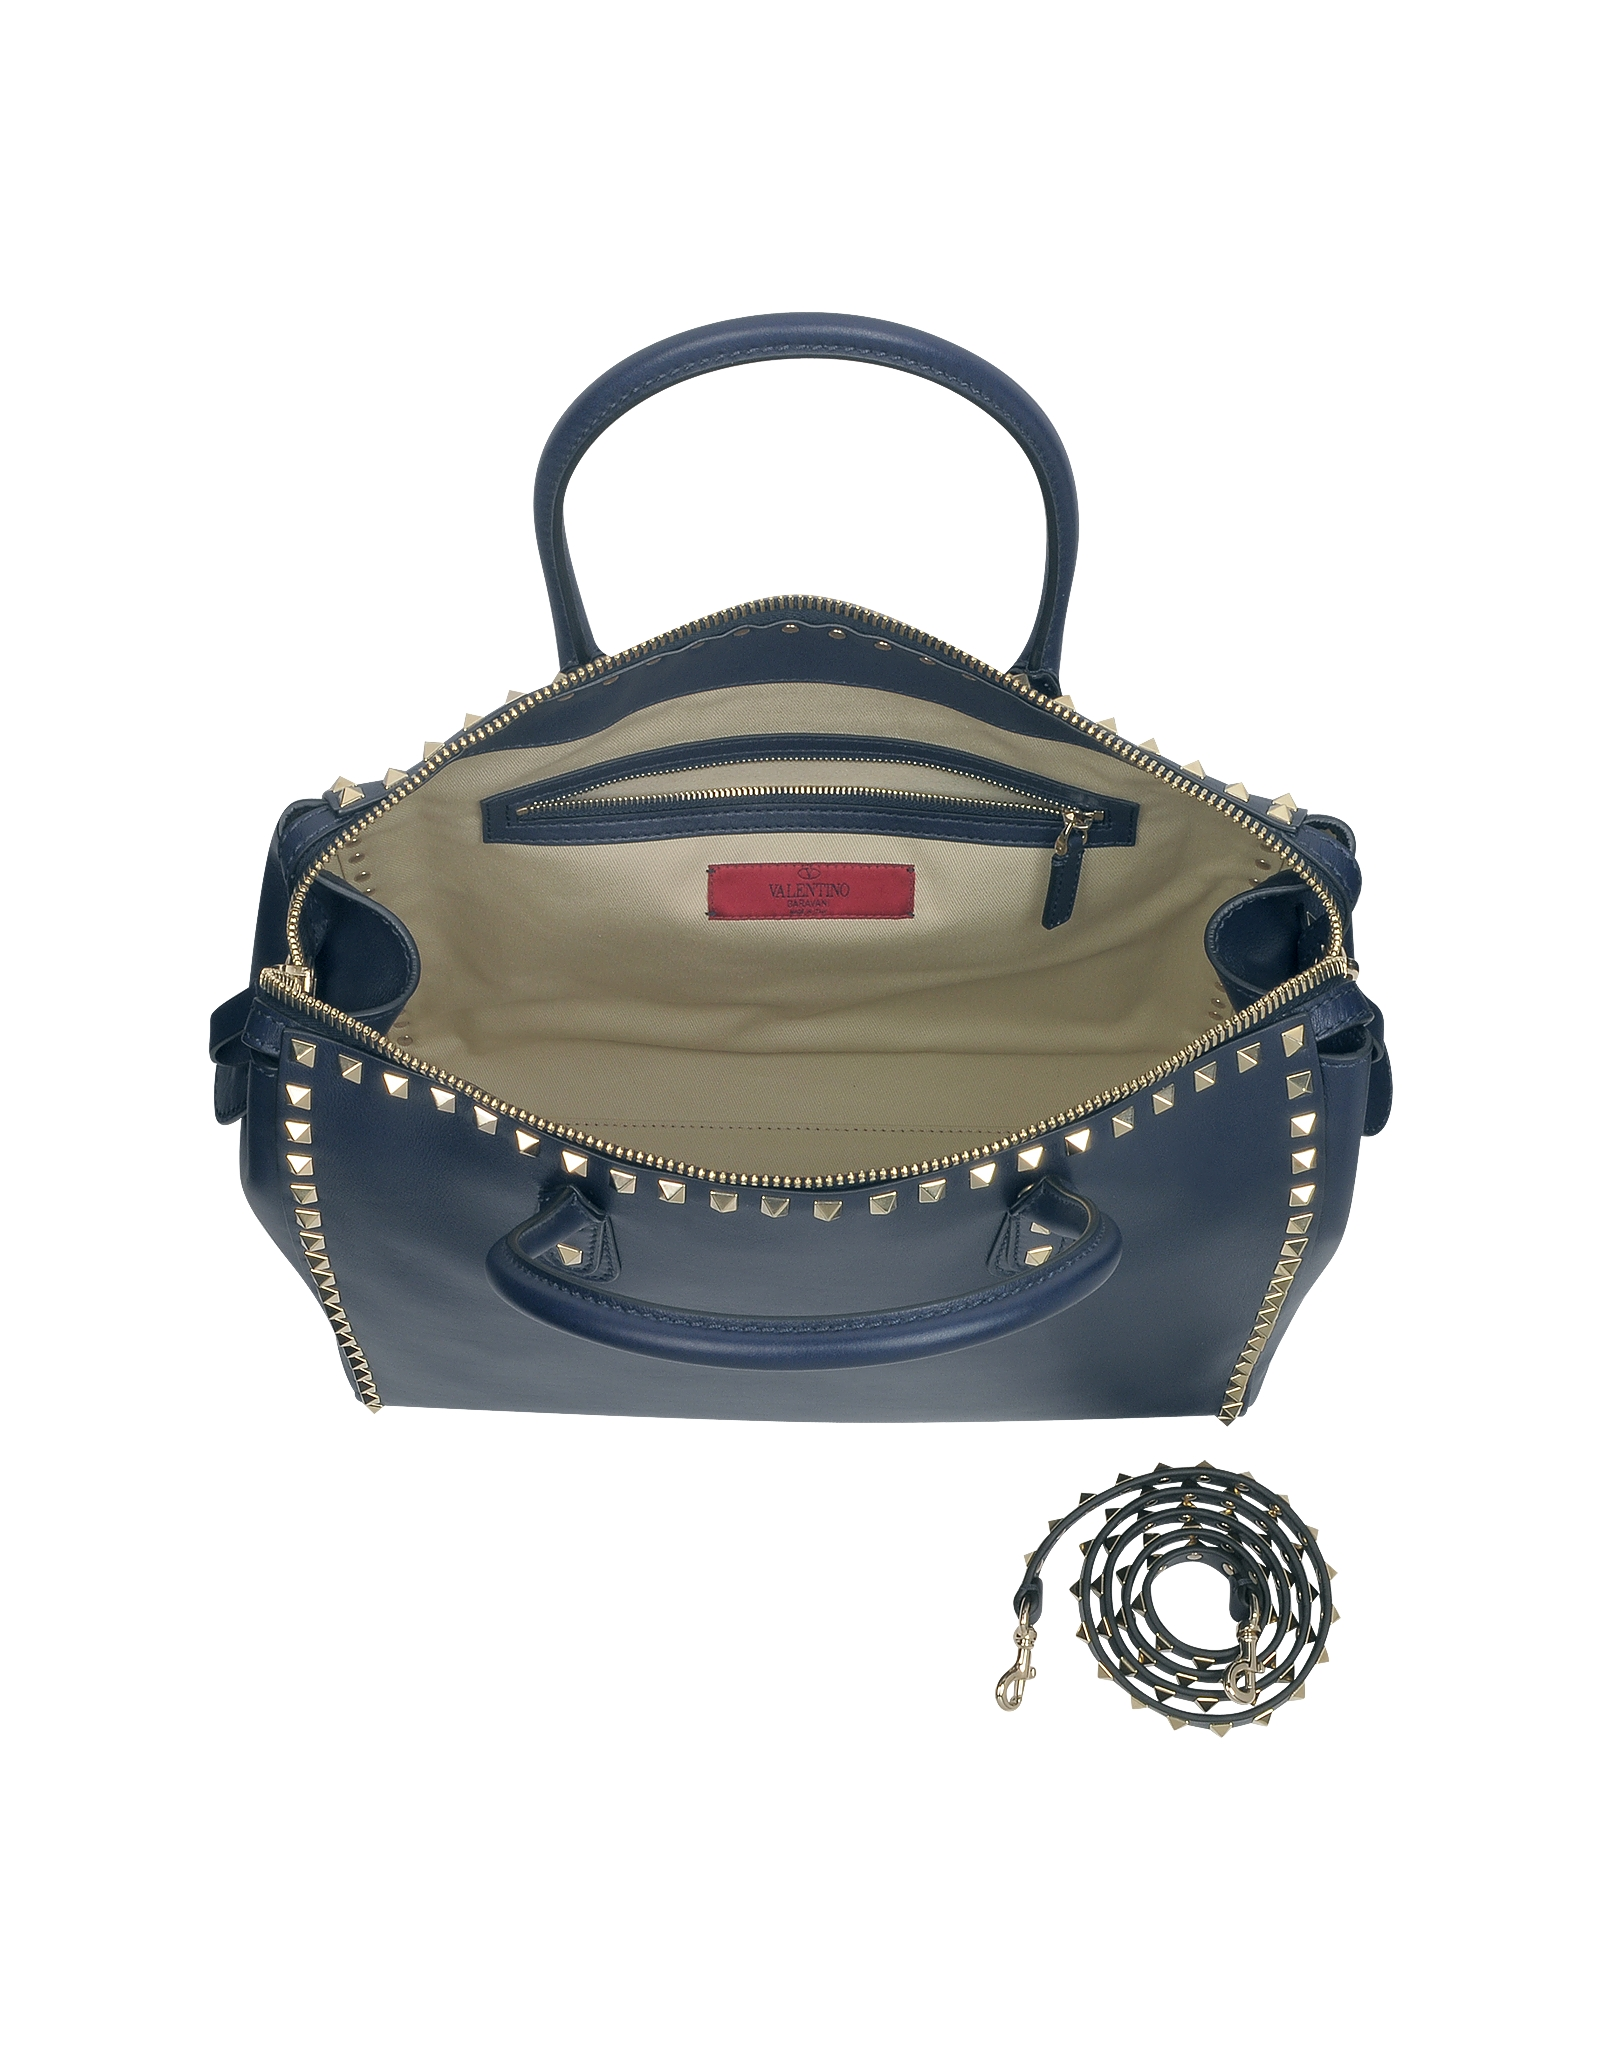 Valentino Rockstud Large Navy Blue Leather Satchel Bag in Blue | Lyst